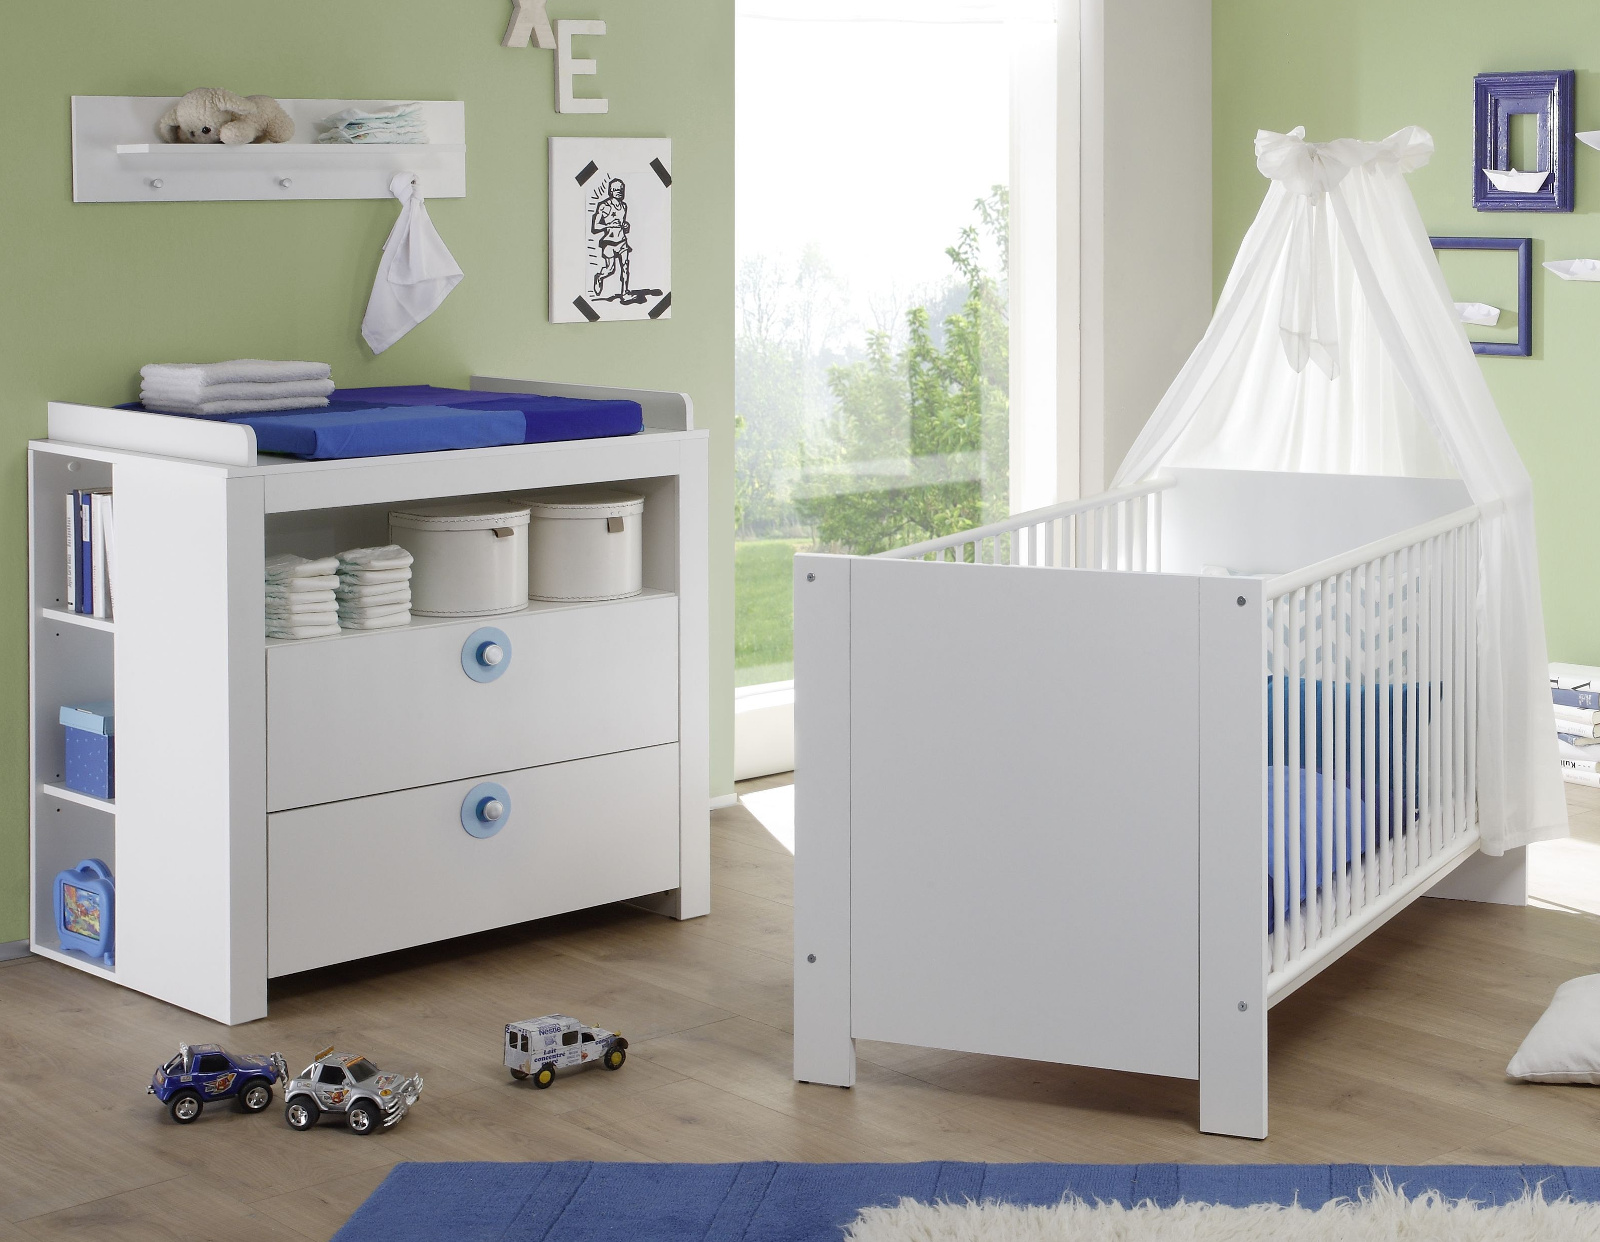 babyzimmer kinderzimmer komplett set wei olivia 4 teilig baby zimmer m bel neu ebay. Black Bedroom Furniture Sets. Home Design Ideas